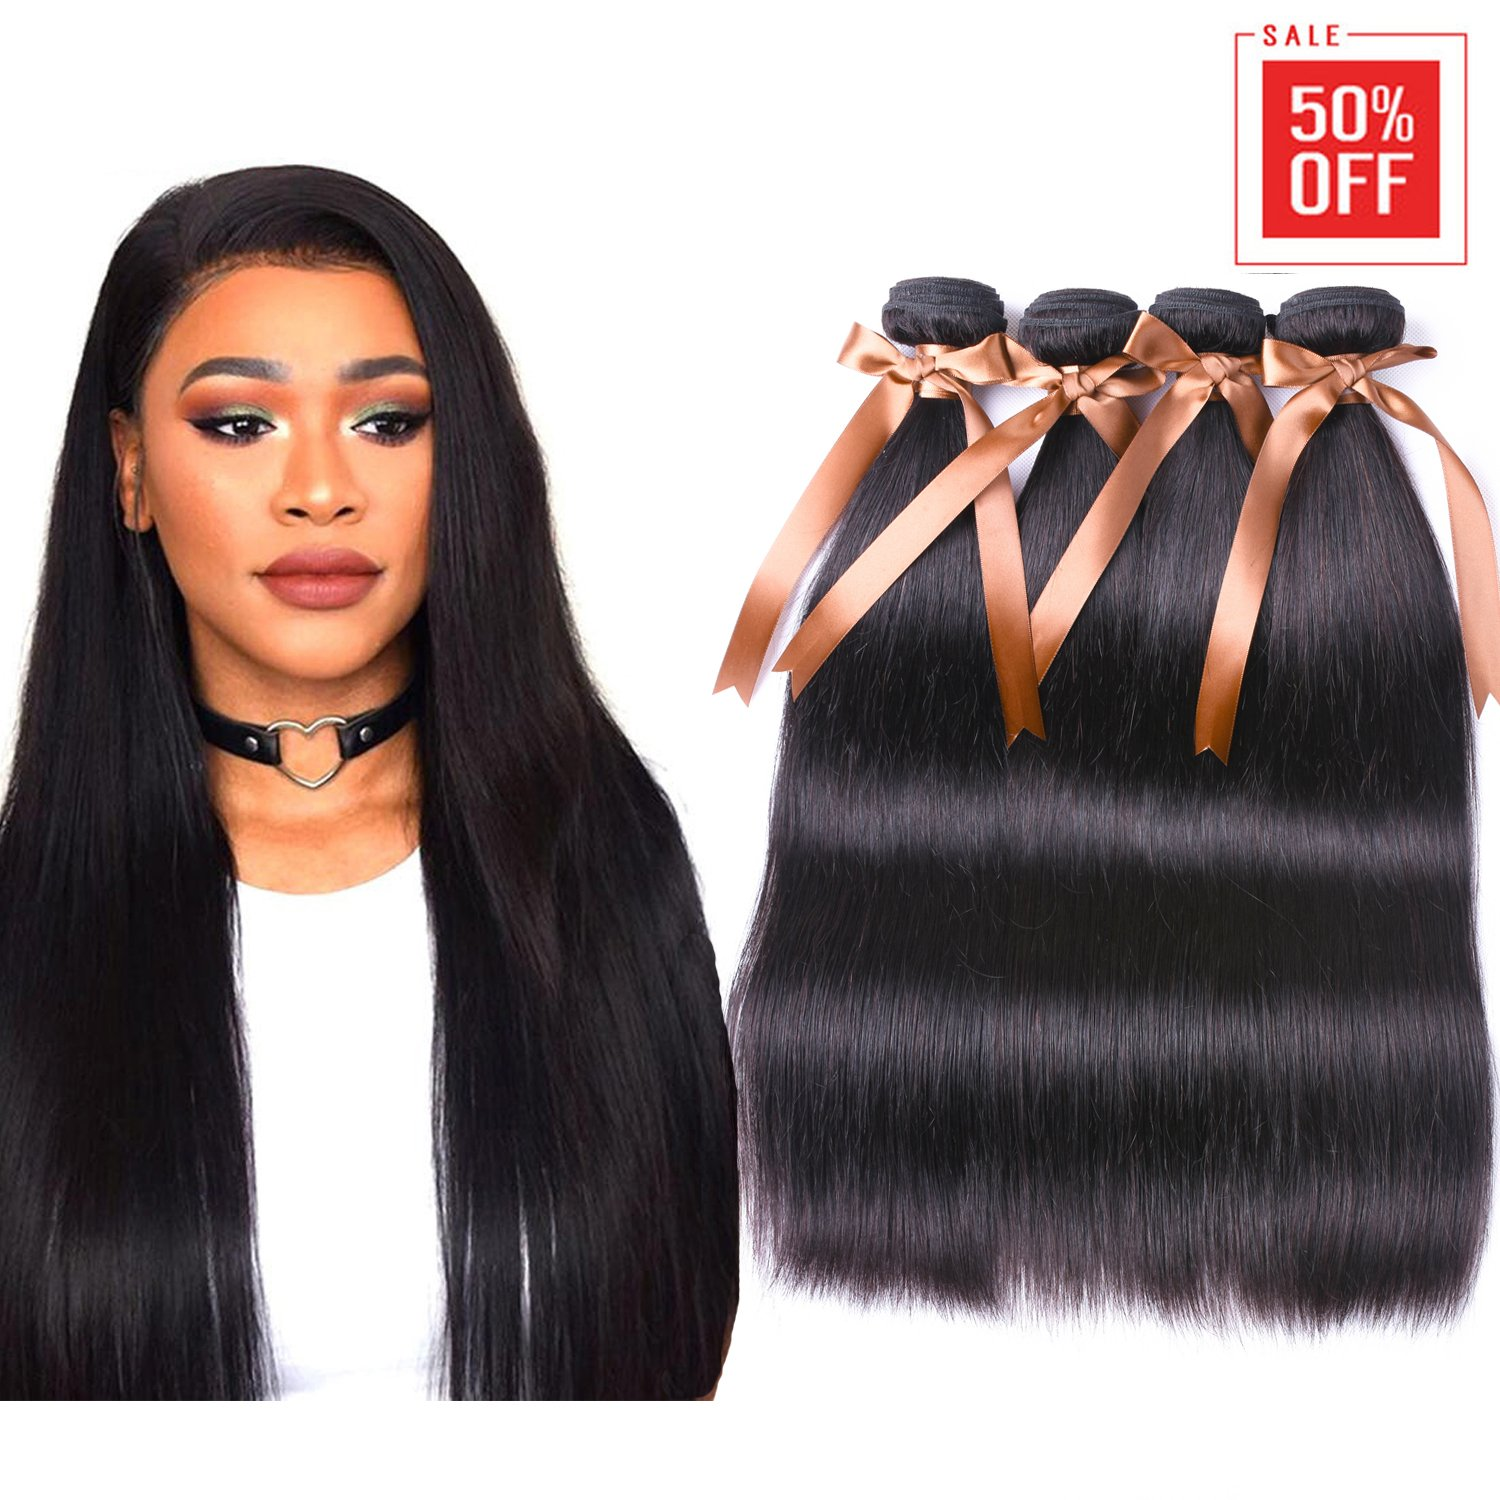 ALLRUN Hair Brazilian Straight Virgin Hair 3 Bundles With Free Part Closure Human Hair Bundles with Closure 100% Unprocessed Human Hair Bundles Hair Extensions Natural Color(22 24 26+20'' Closure)